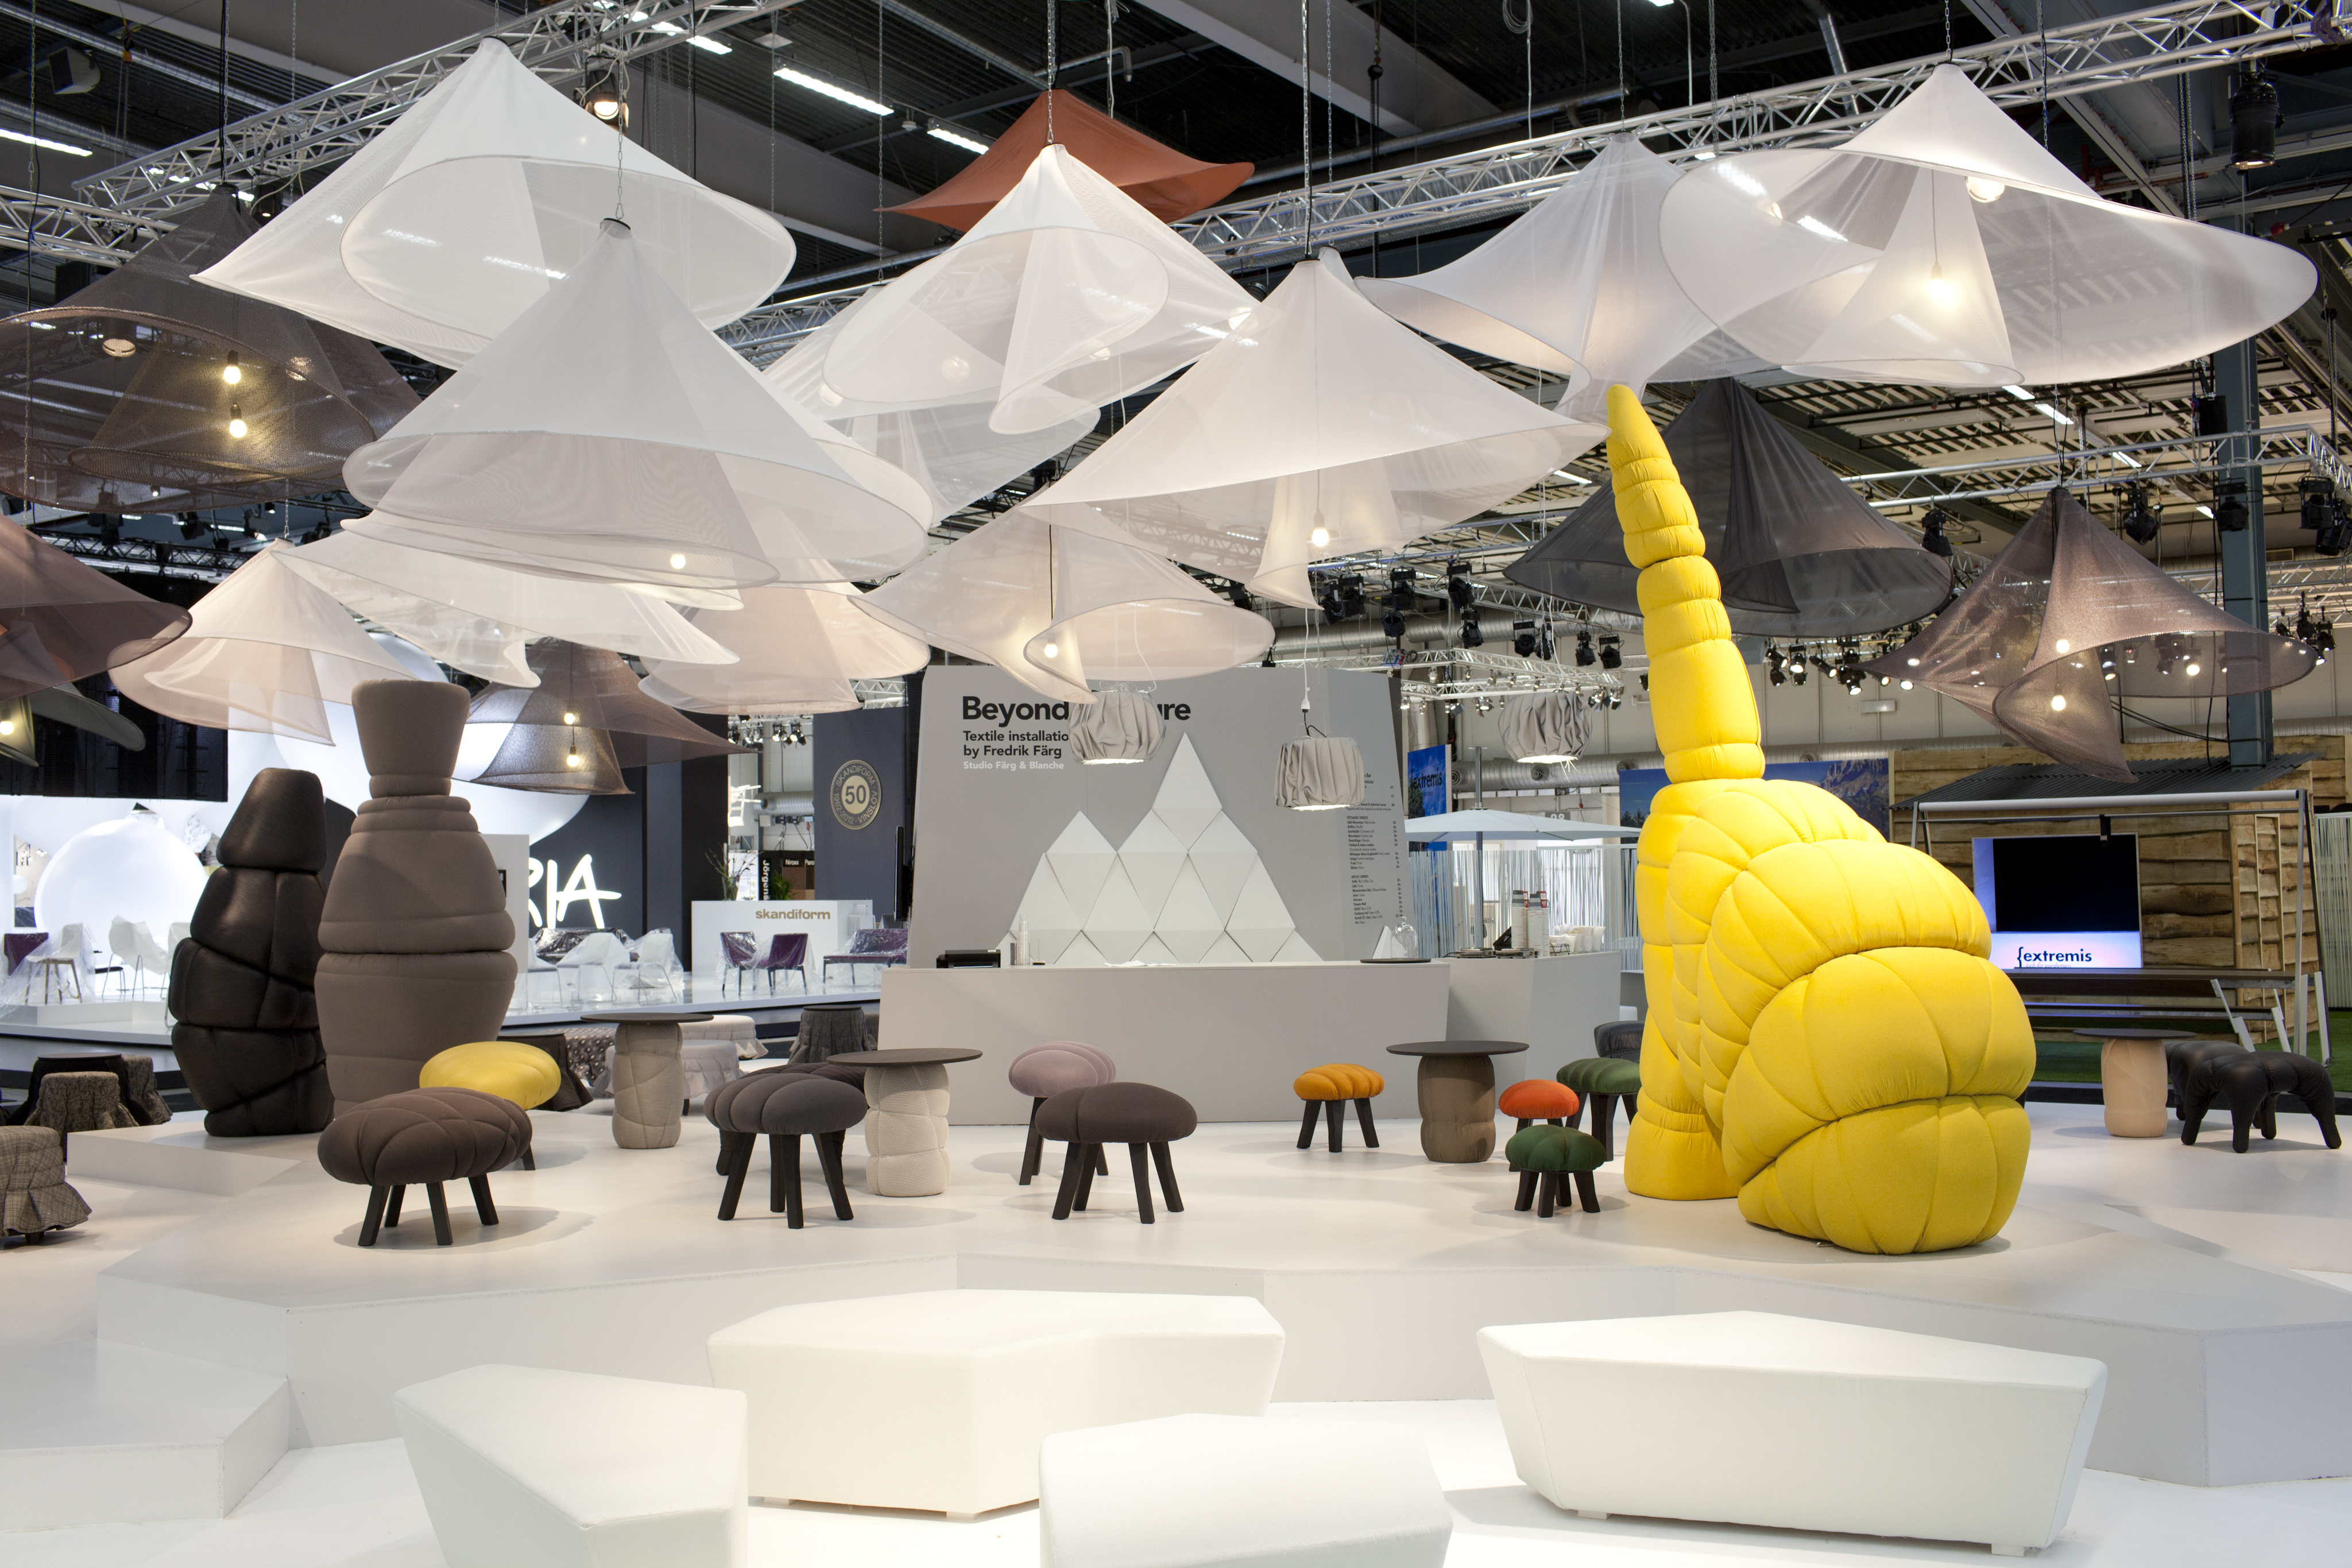 """Stockholm Furniture Fair : Stockholm furniture fair """"beyond couture fÄrg blanche"""